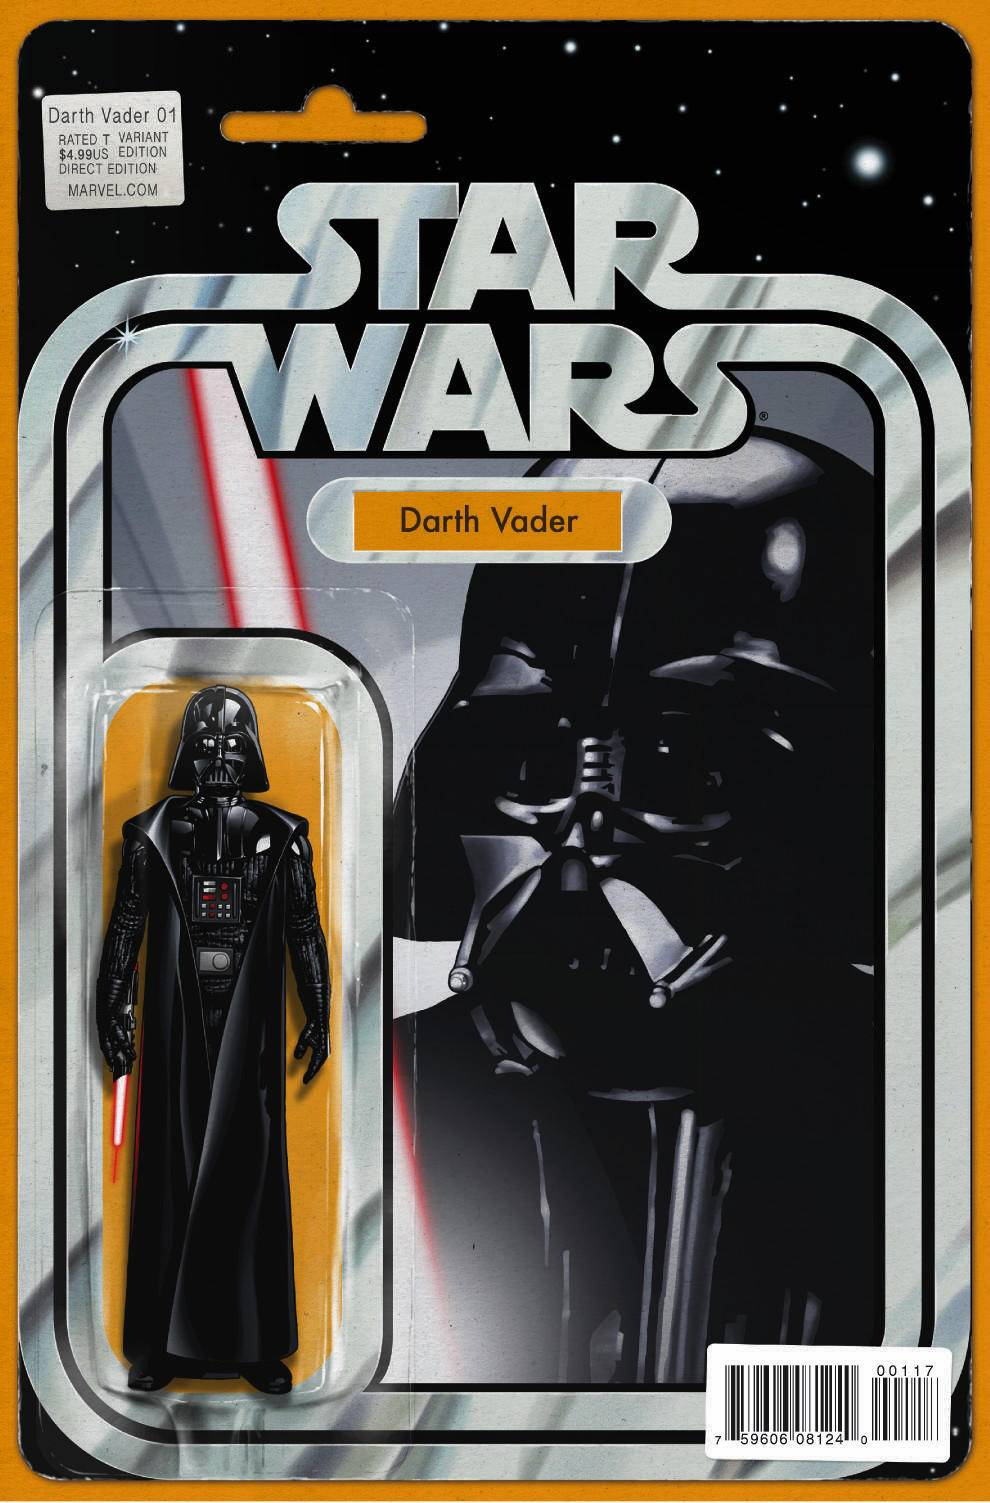 Darth Vader #1 (Action Figure Variant Cover) (11.02.2015)